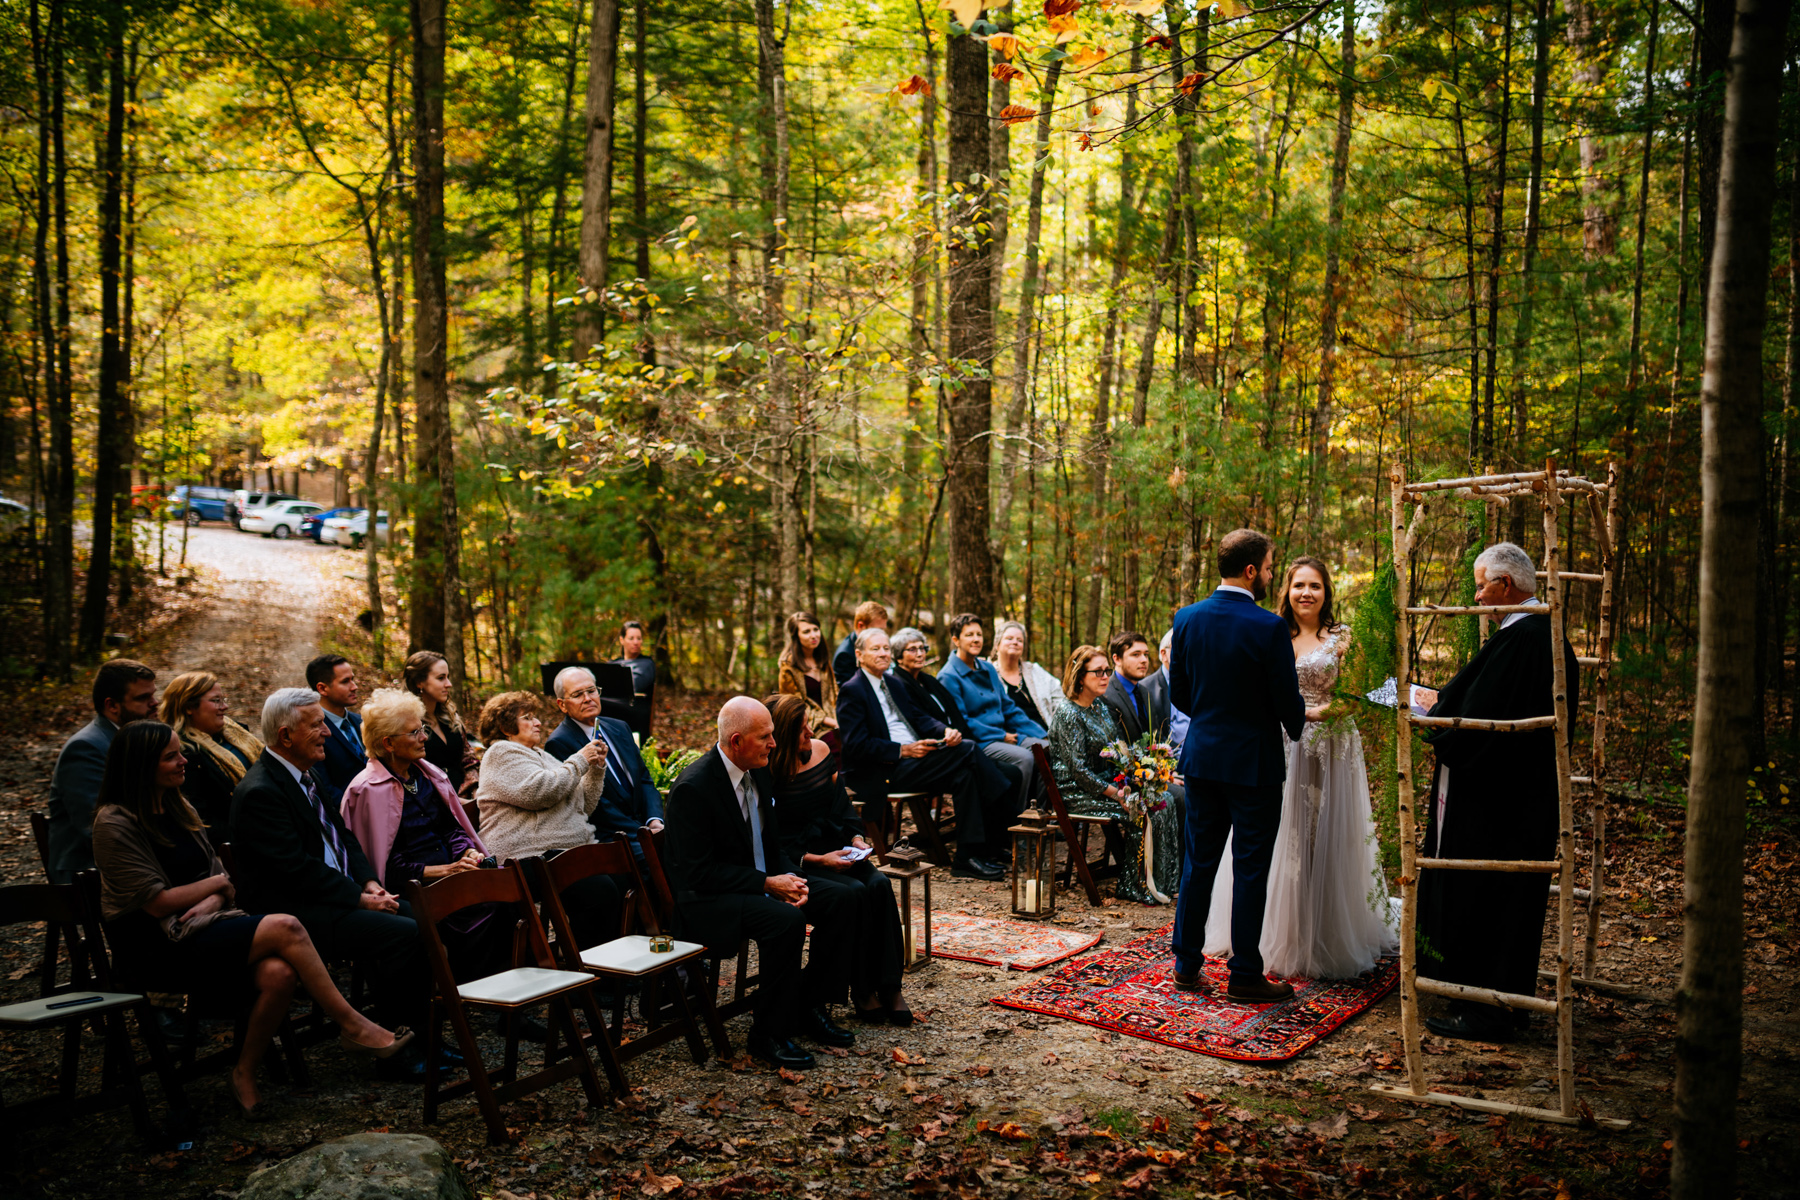 wv micro wedding ceremony at greenbrier state forest